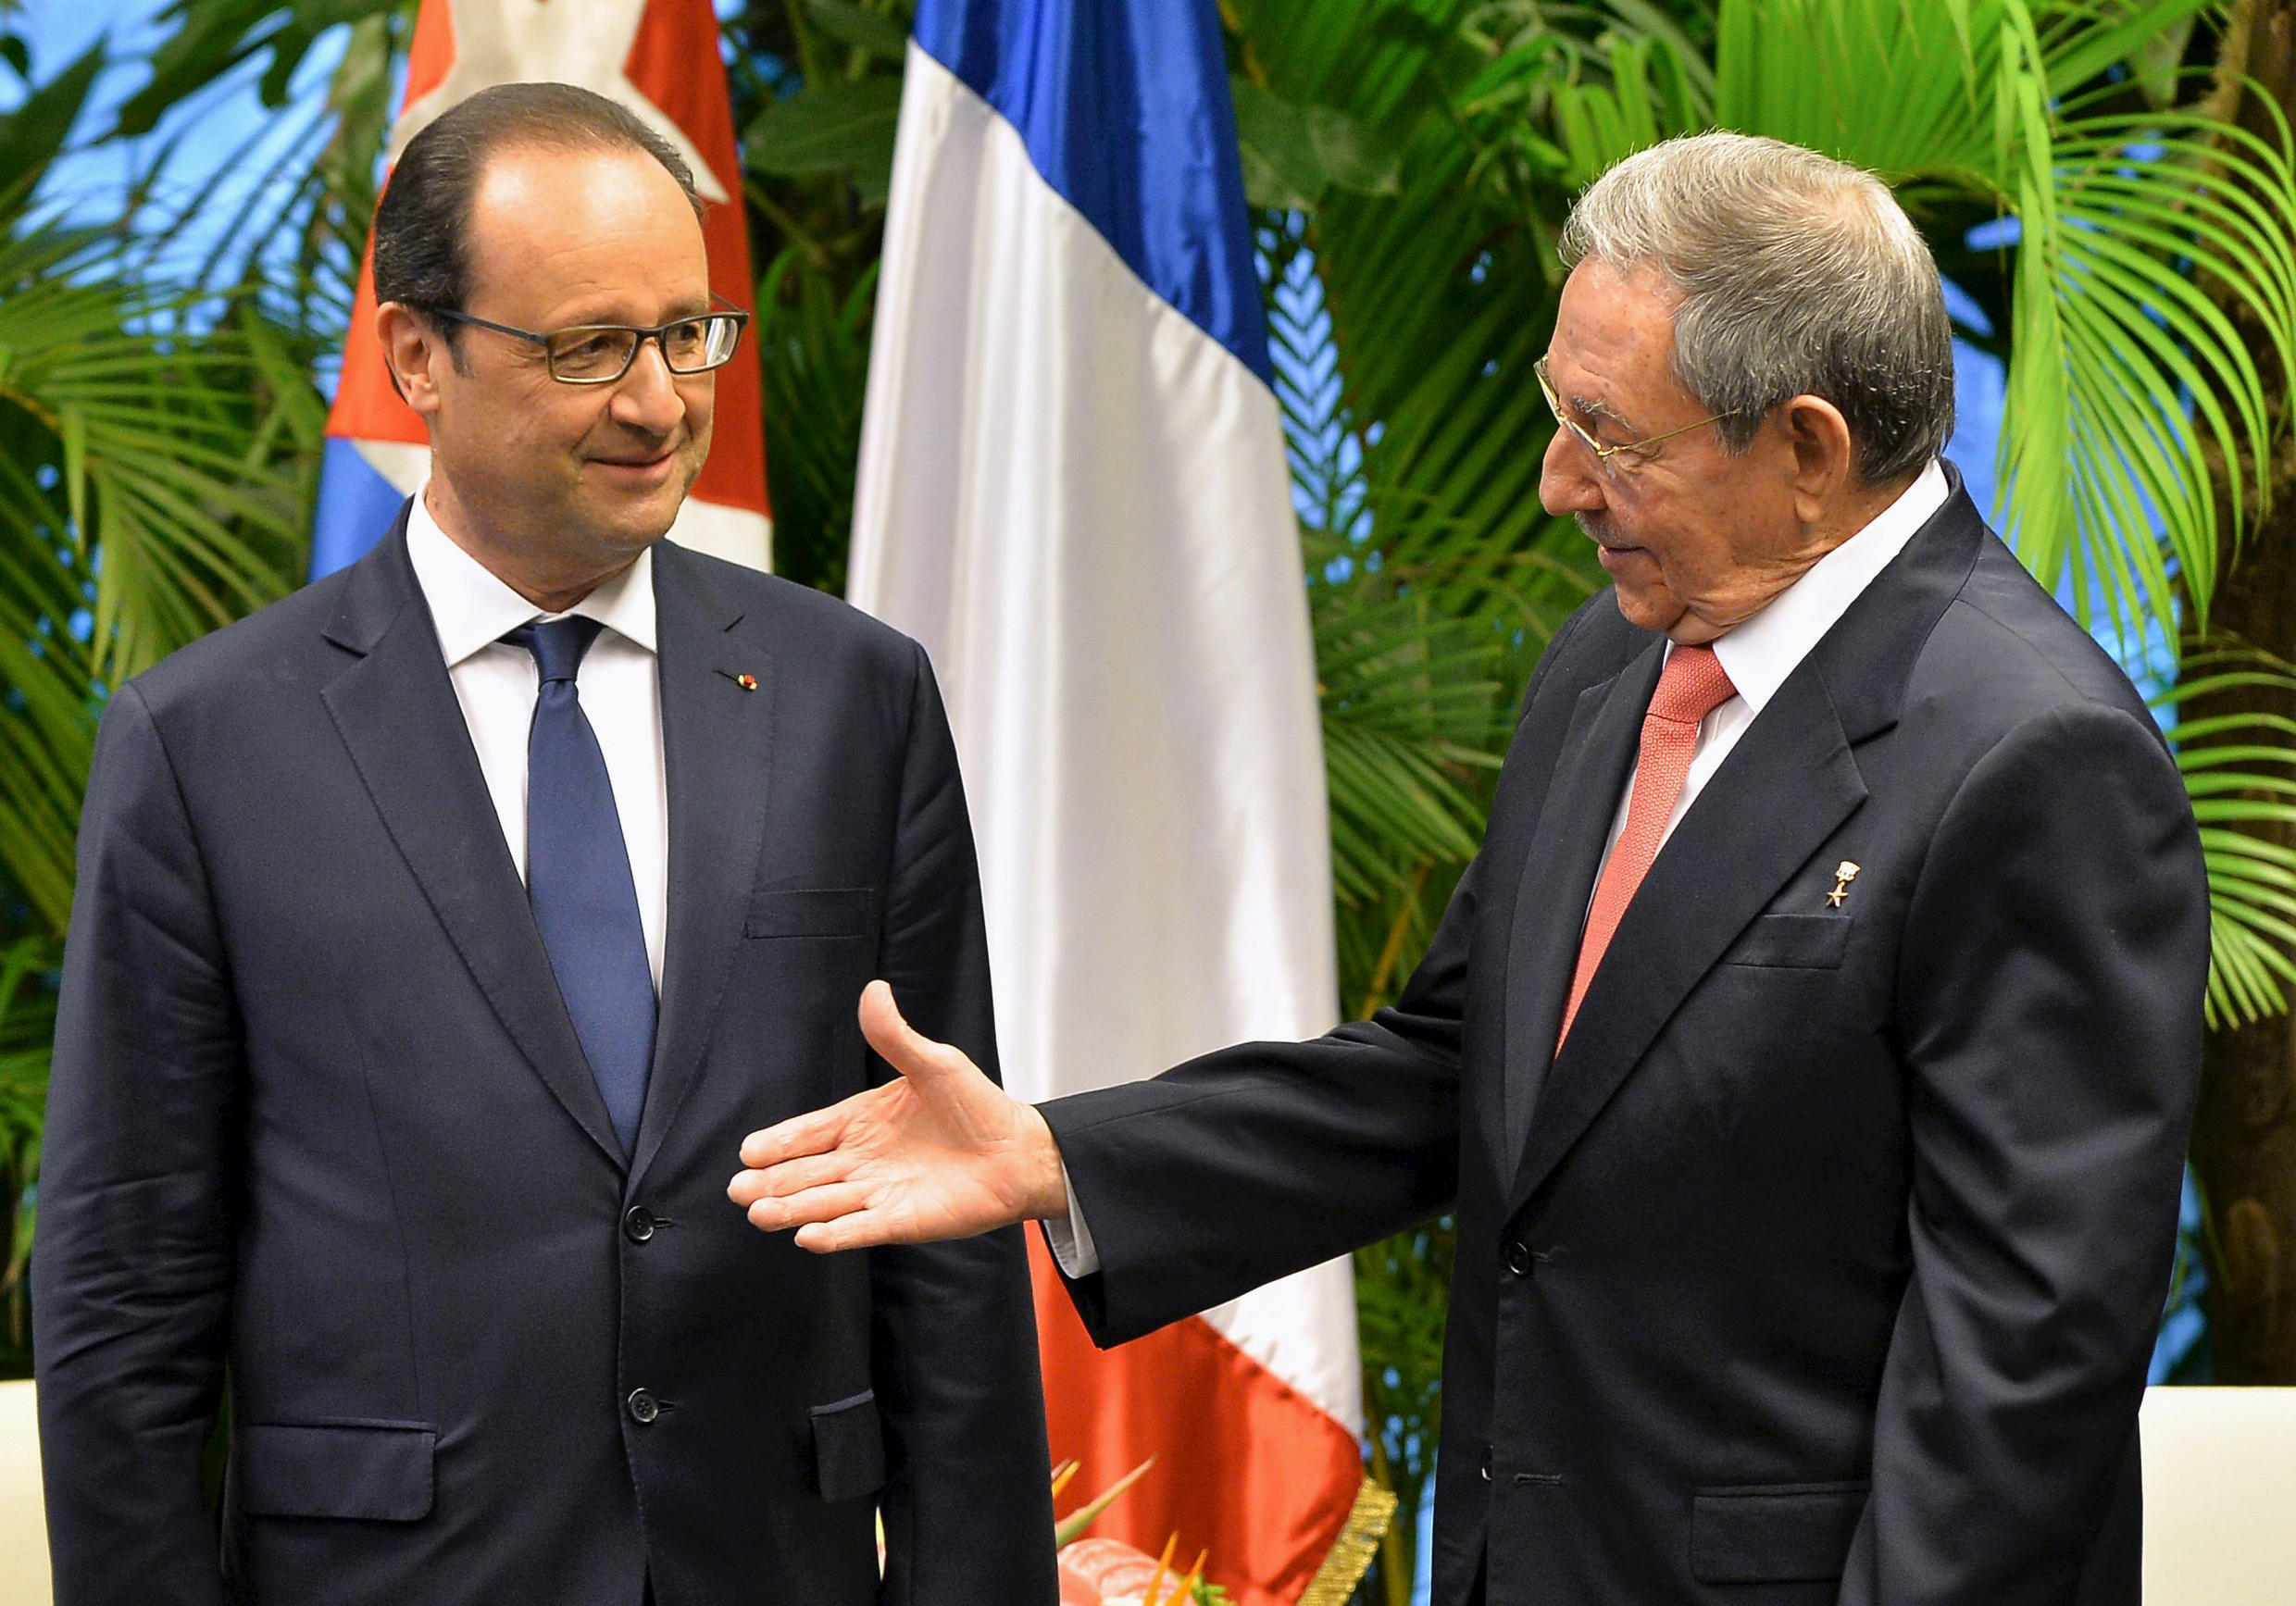 French President Francois Hollande became the first Western leader to visit Cuba in more than 50 years following the thawing of relations between the United States and Cuba.